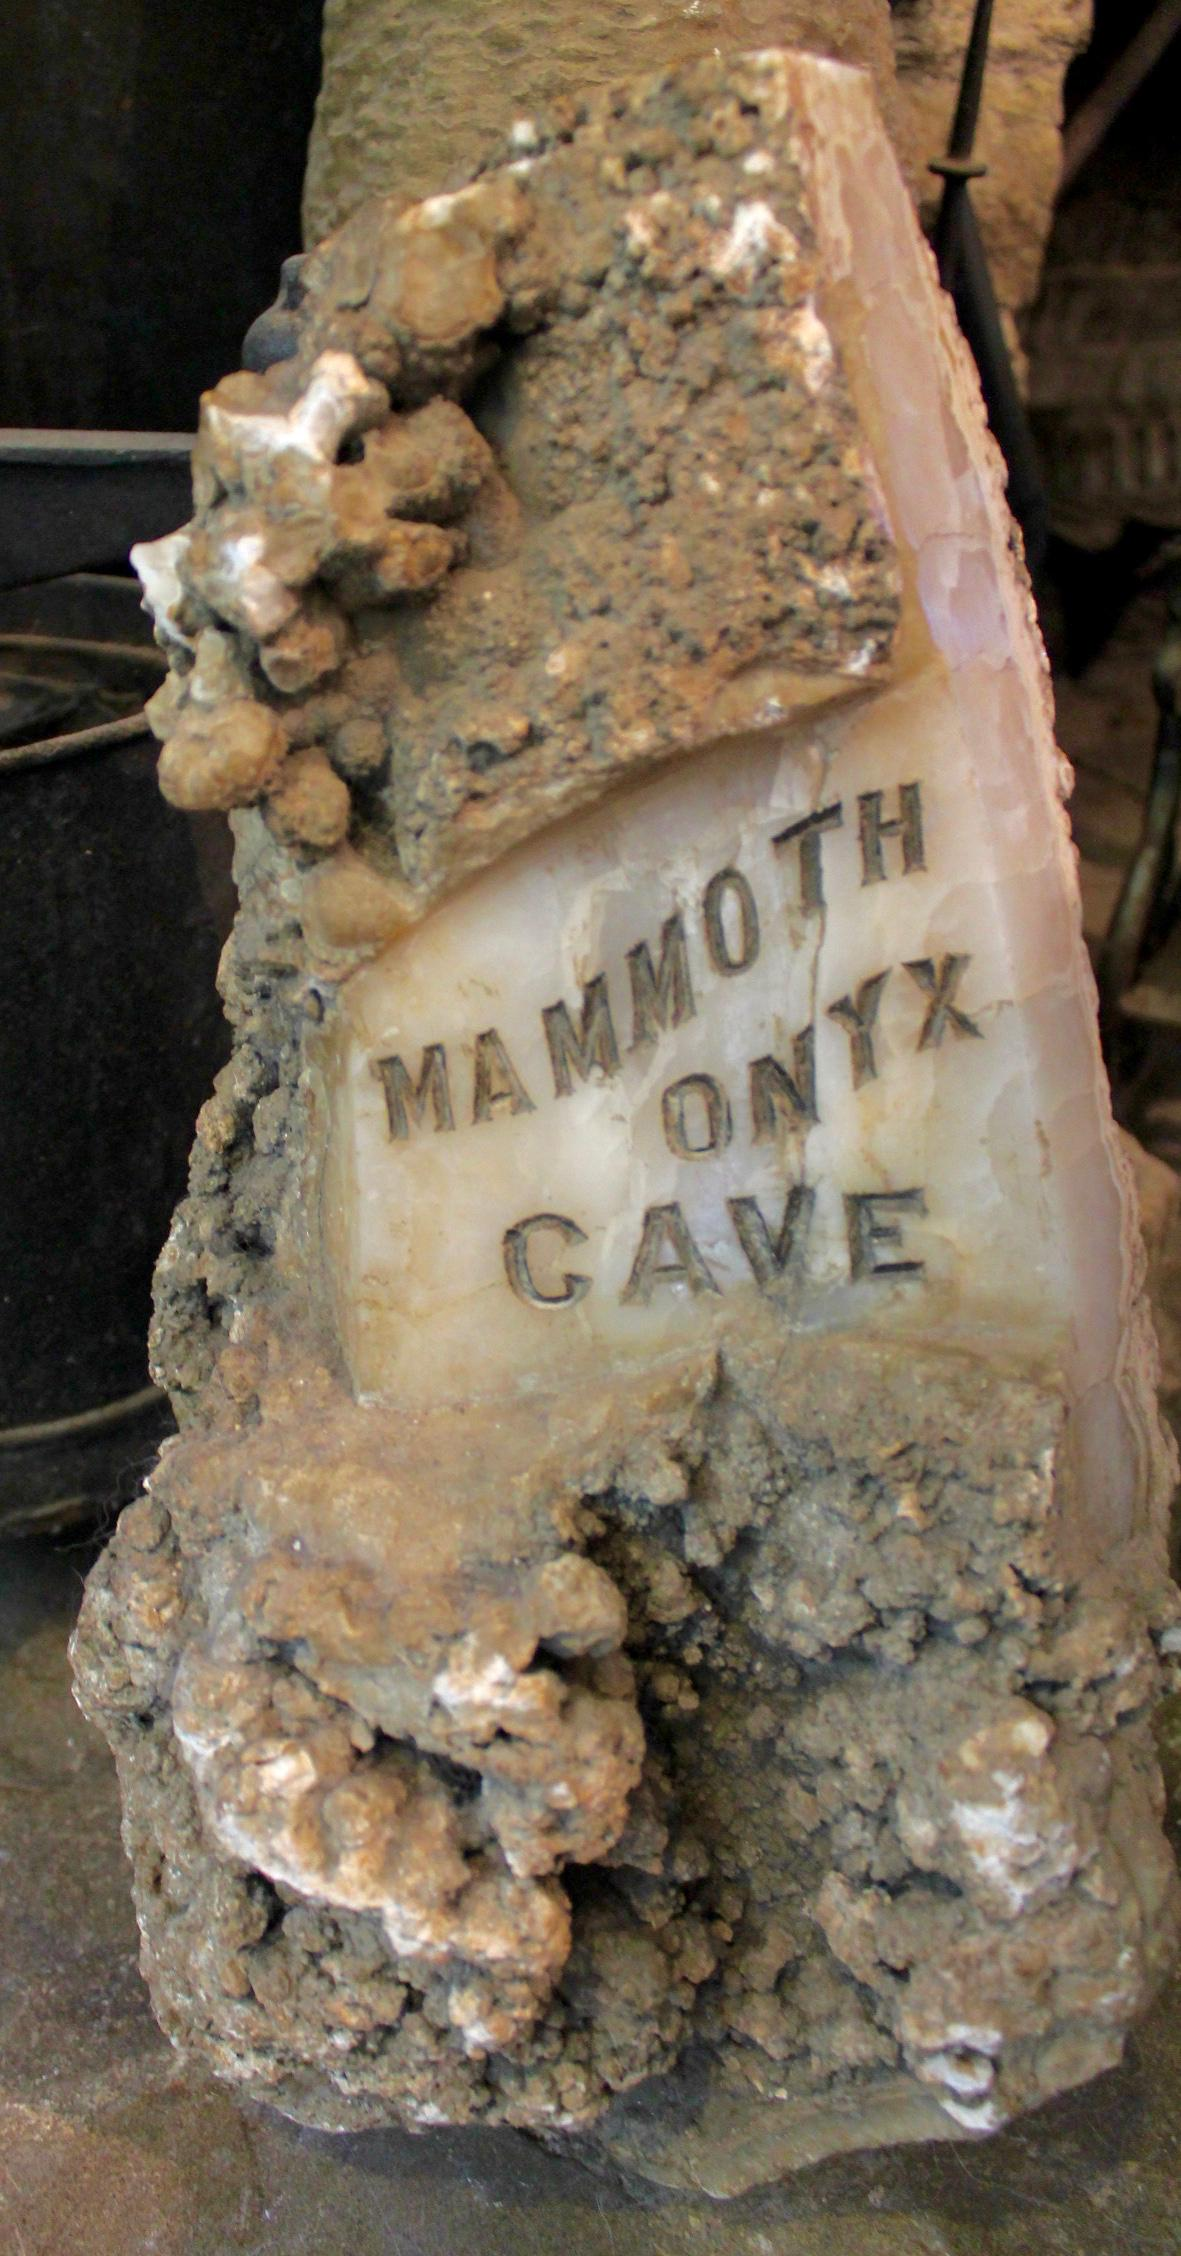 Mammoth Onyx Cave was discovered in 1799 by a young girl, Martha A. Woodson, who was looking for berries when she stumbled upon the cave. When the property was purchased by Dr. H.B. Thomas, a retired dental surgeon, he began the first modernization of the trails and it was opened to the public in 1922. / Image: Rose Brewington